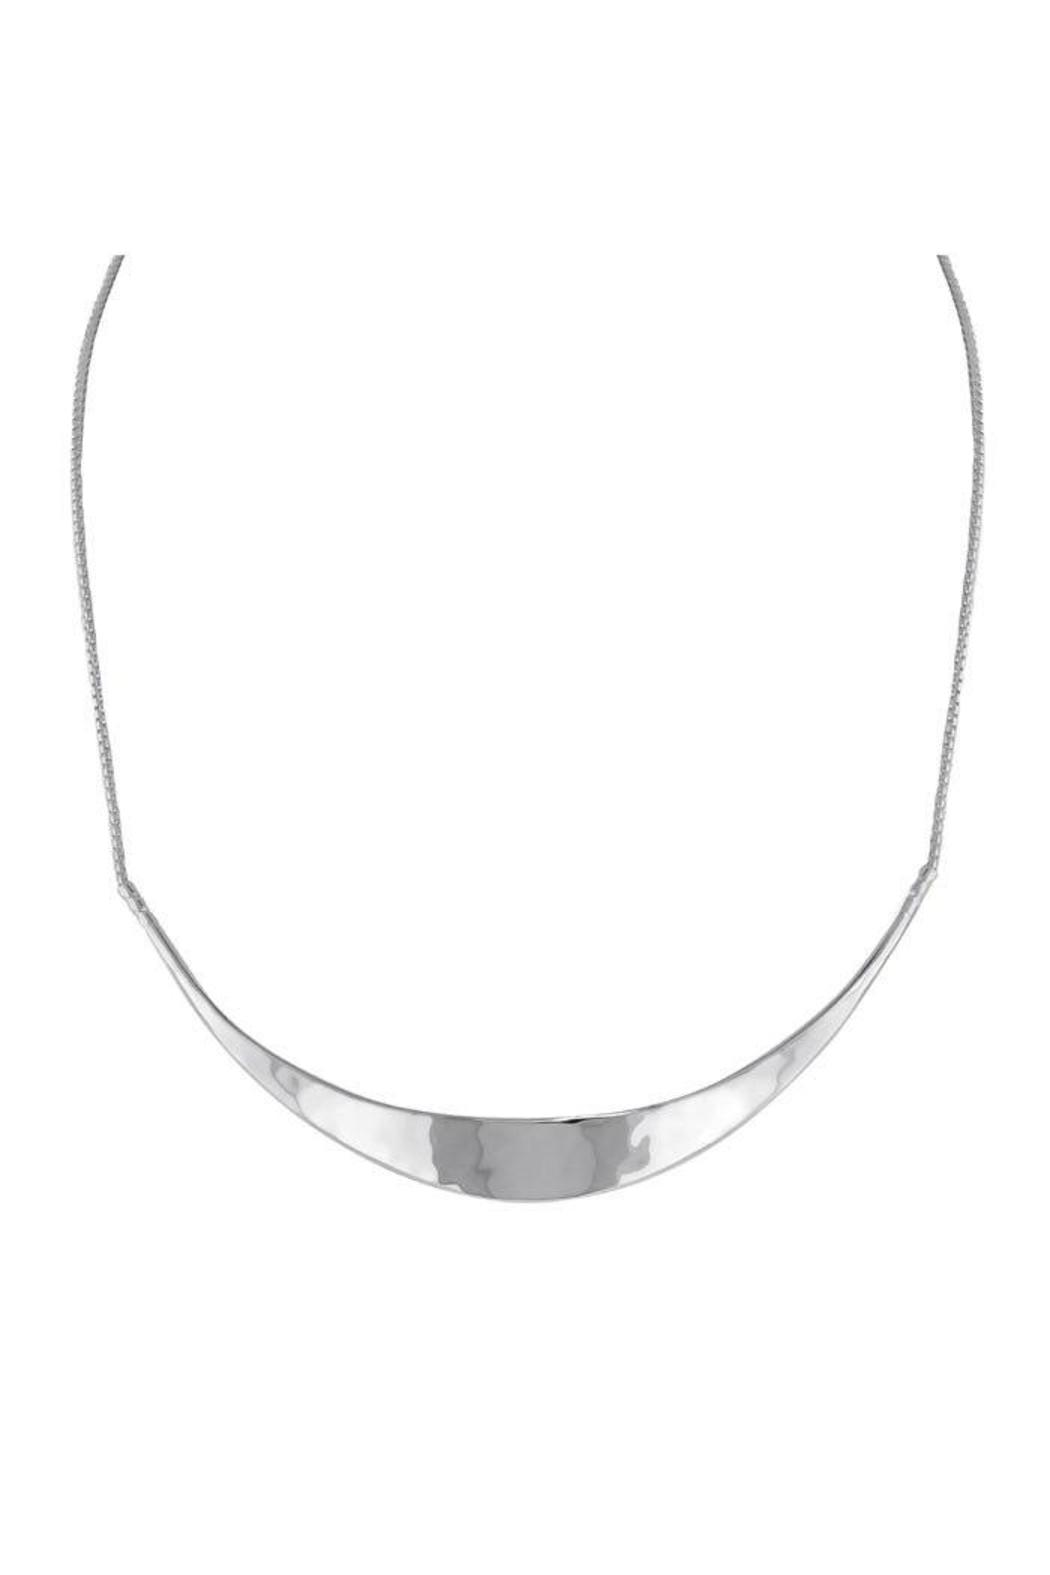 Ed Levin Jewelry Artisan Hammered Necklace - Main Image